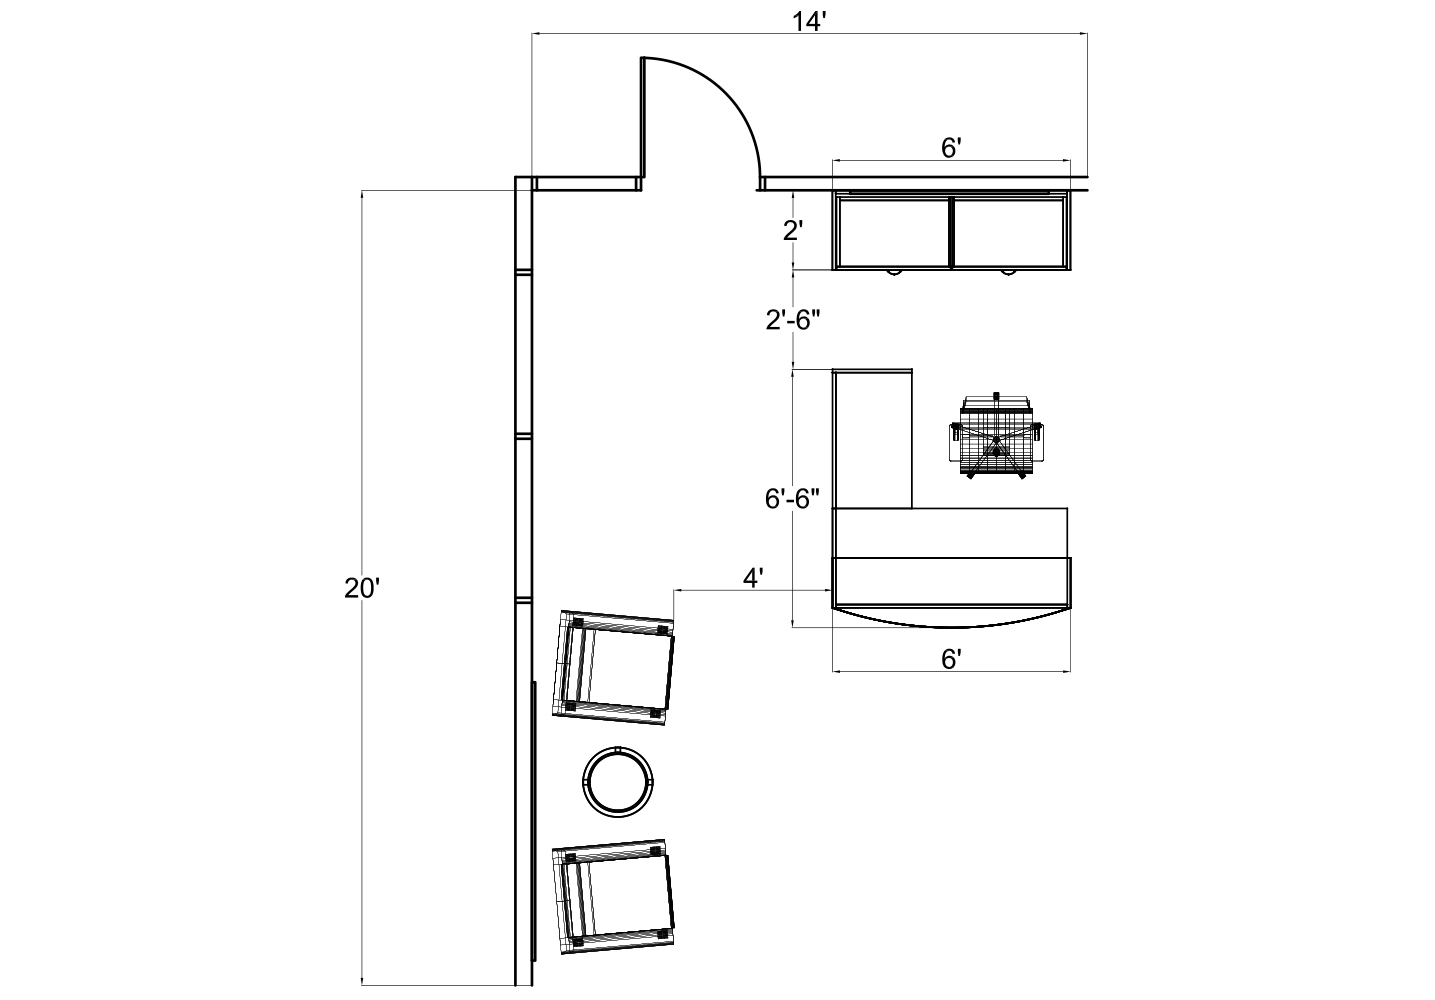 Basic Home Theater Wiring